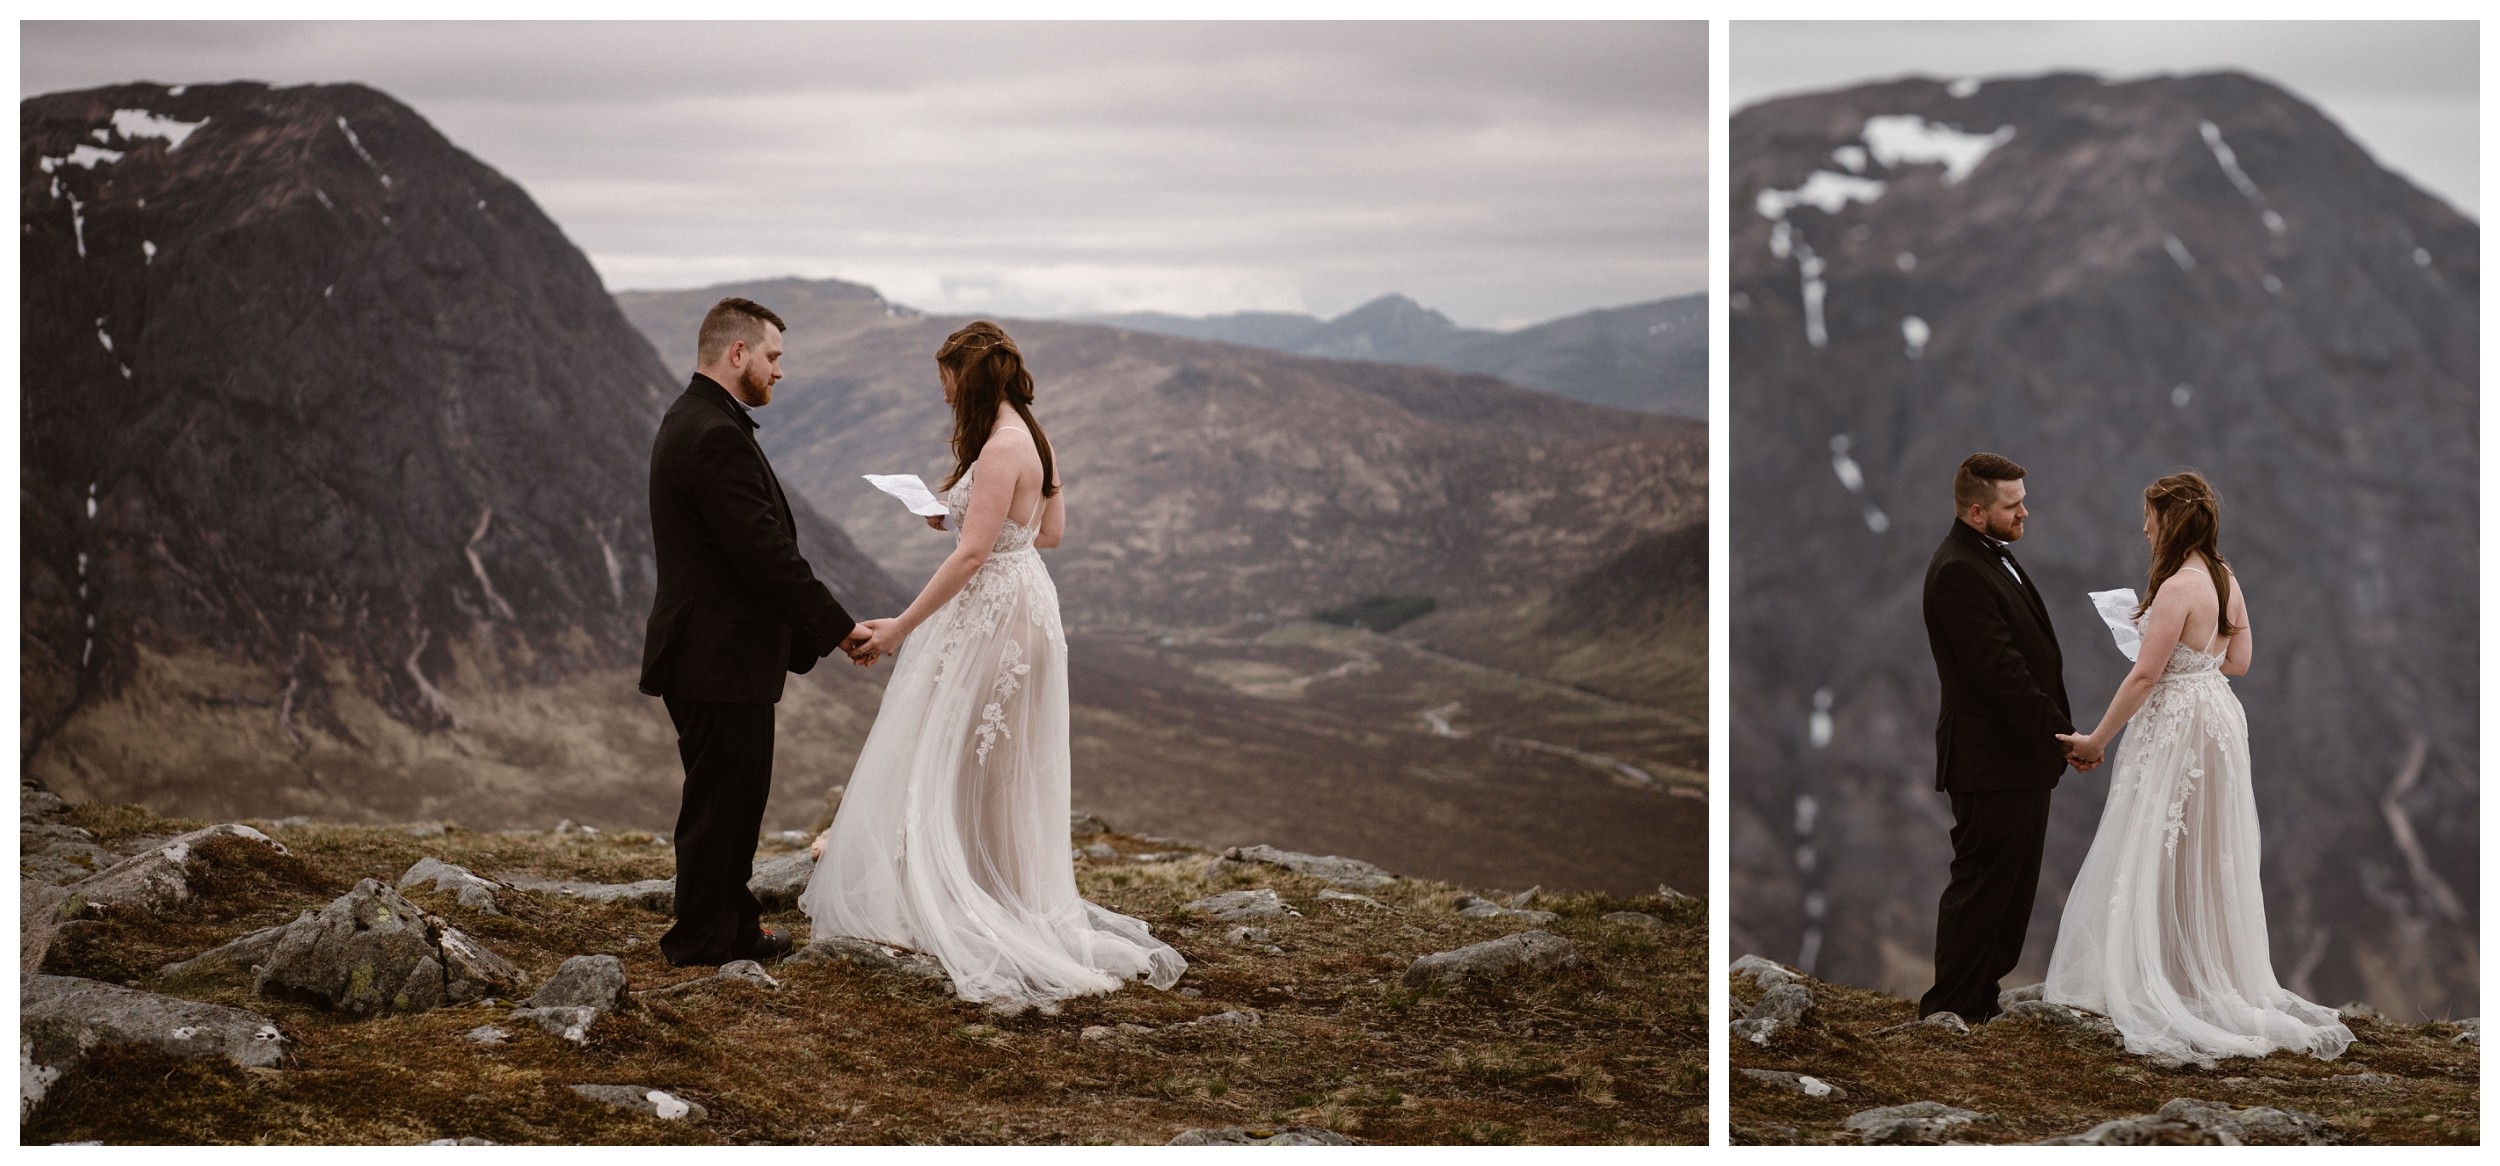 Elissa and Daniel say their vows high on a mountain top with a view of the Scottish Highlands during their destination adventure elopement. Photo by Maddie Mae, Adventure Instead.